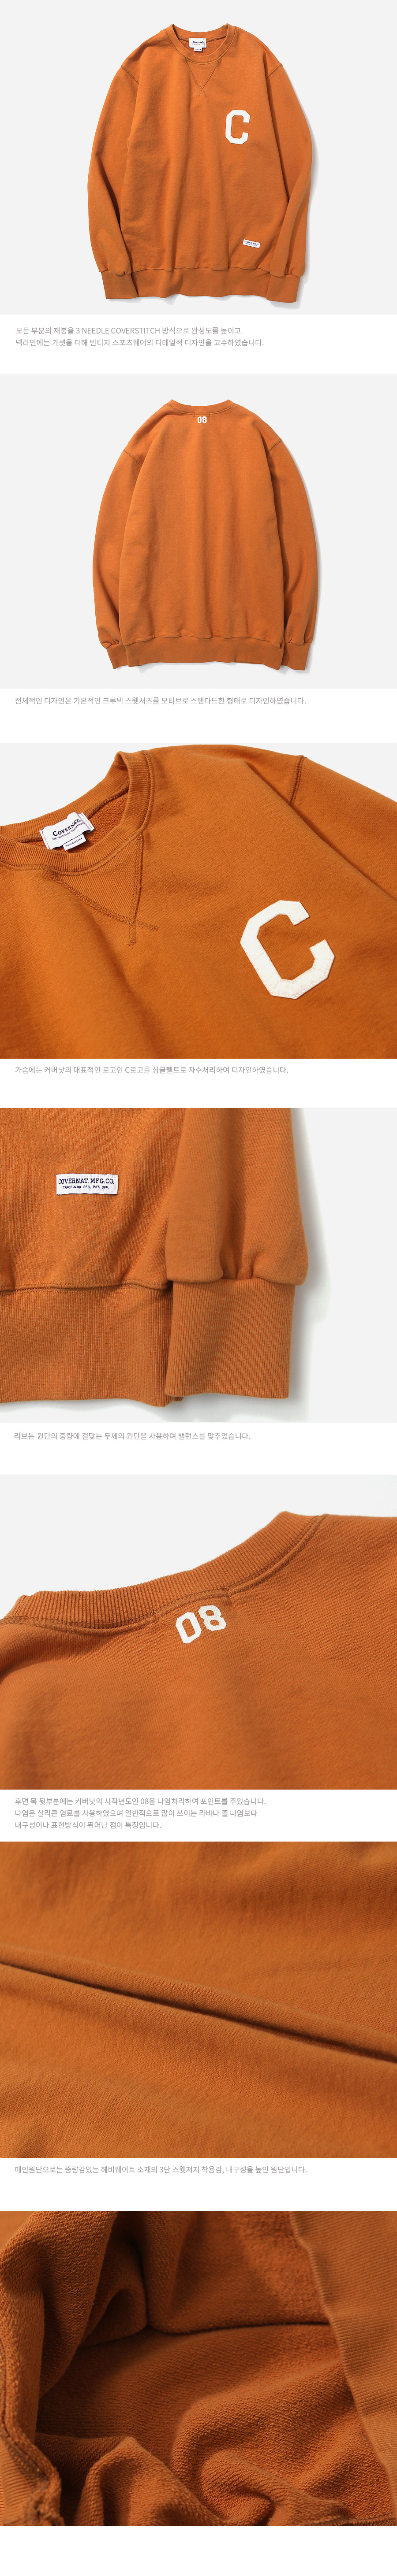 커버낫(COVERNAT) C LOGO CREWNECK ORANGE